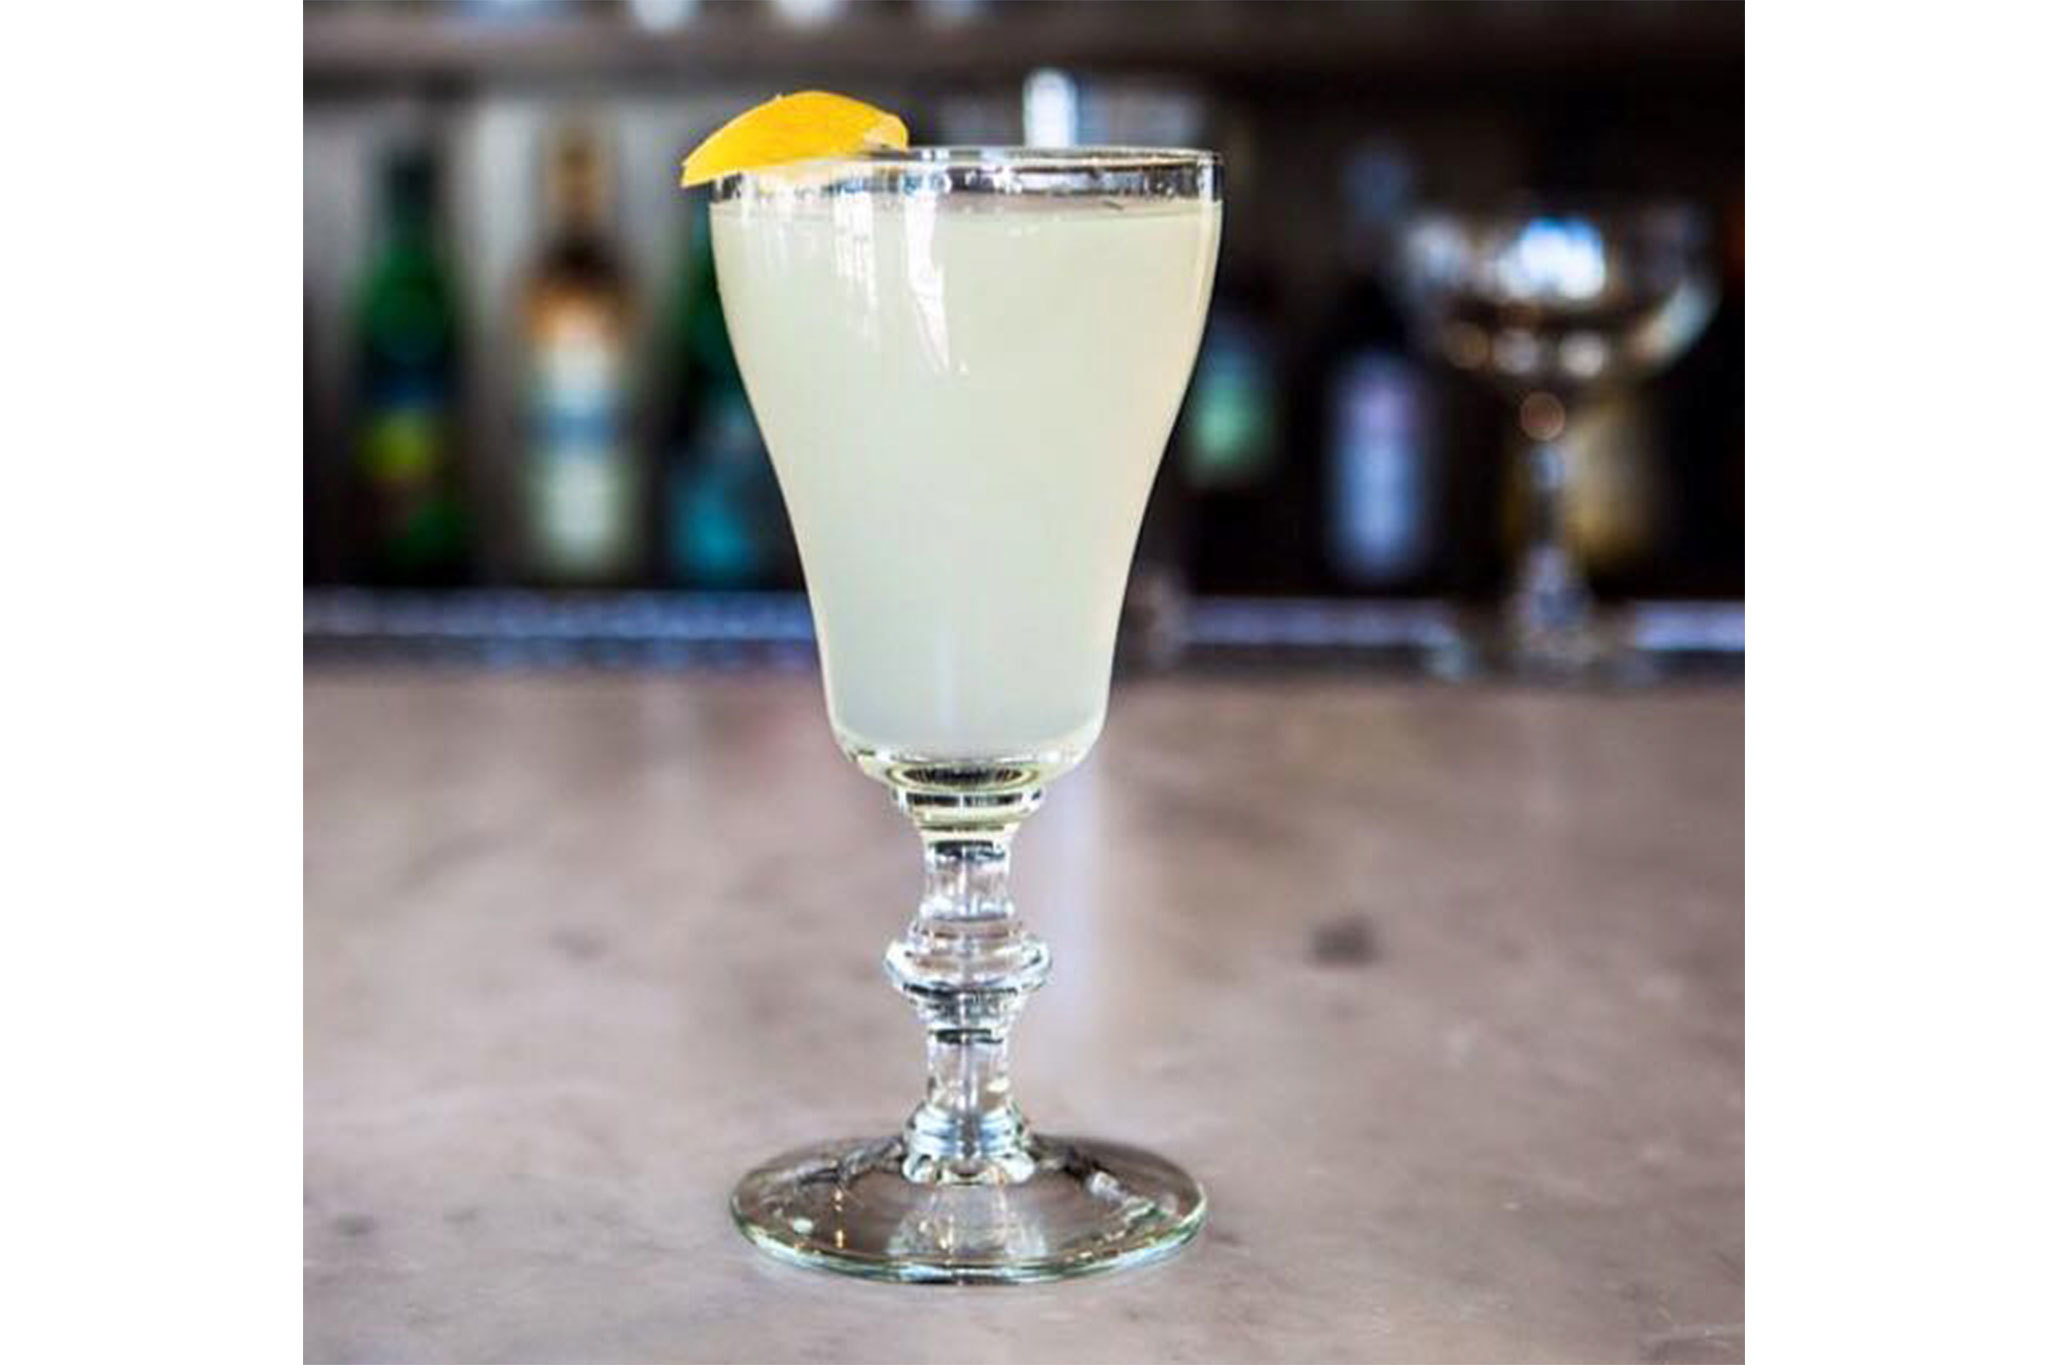 French 75 at Royal